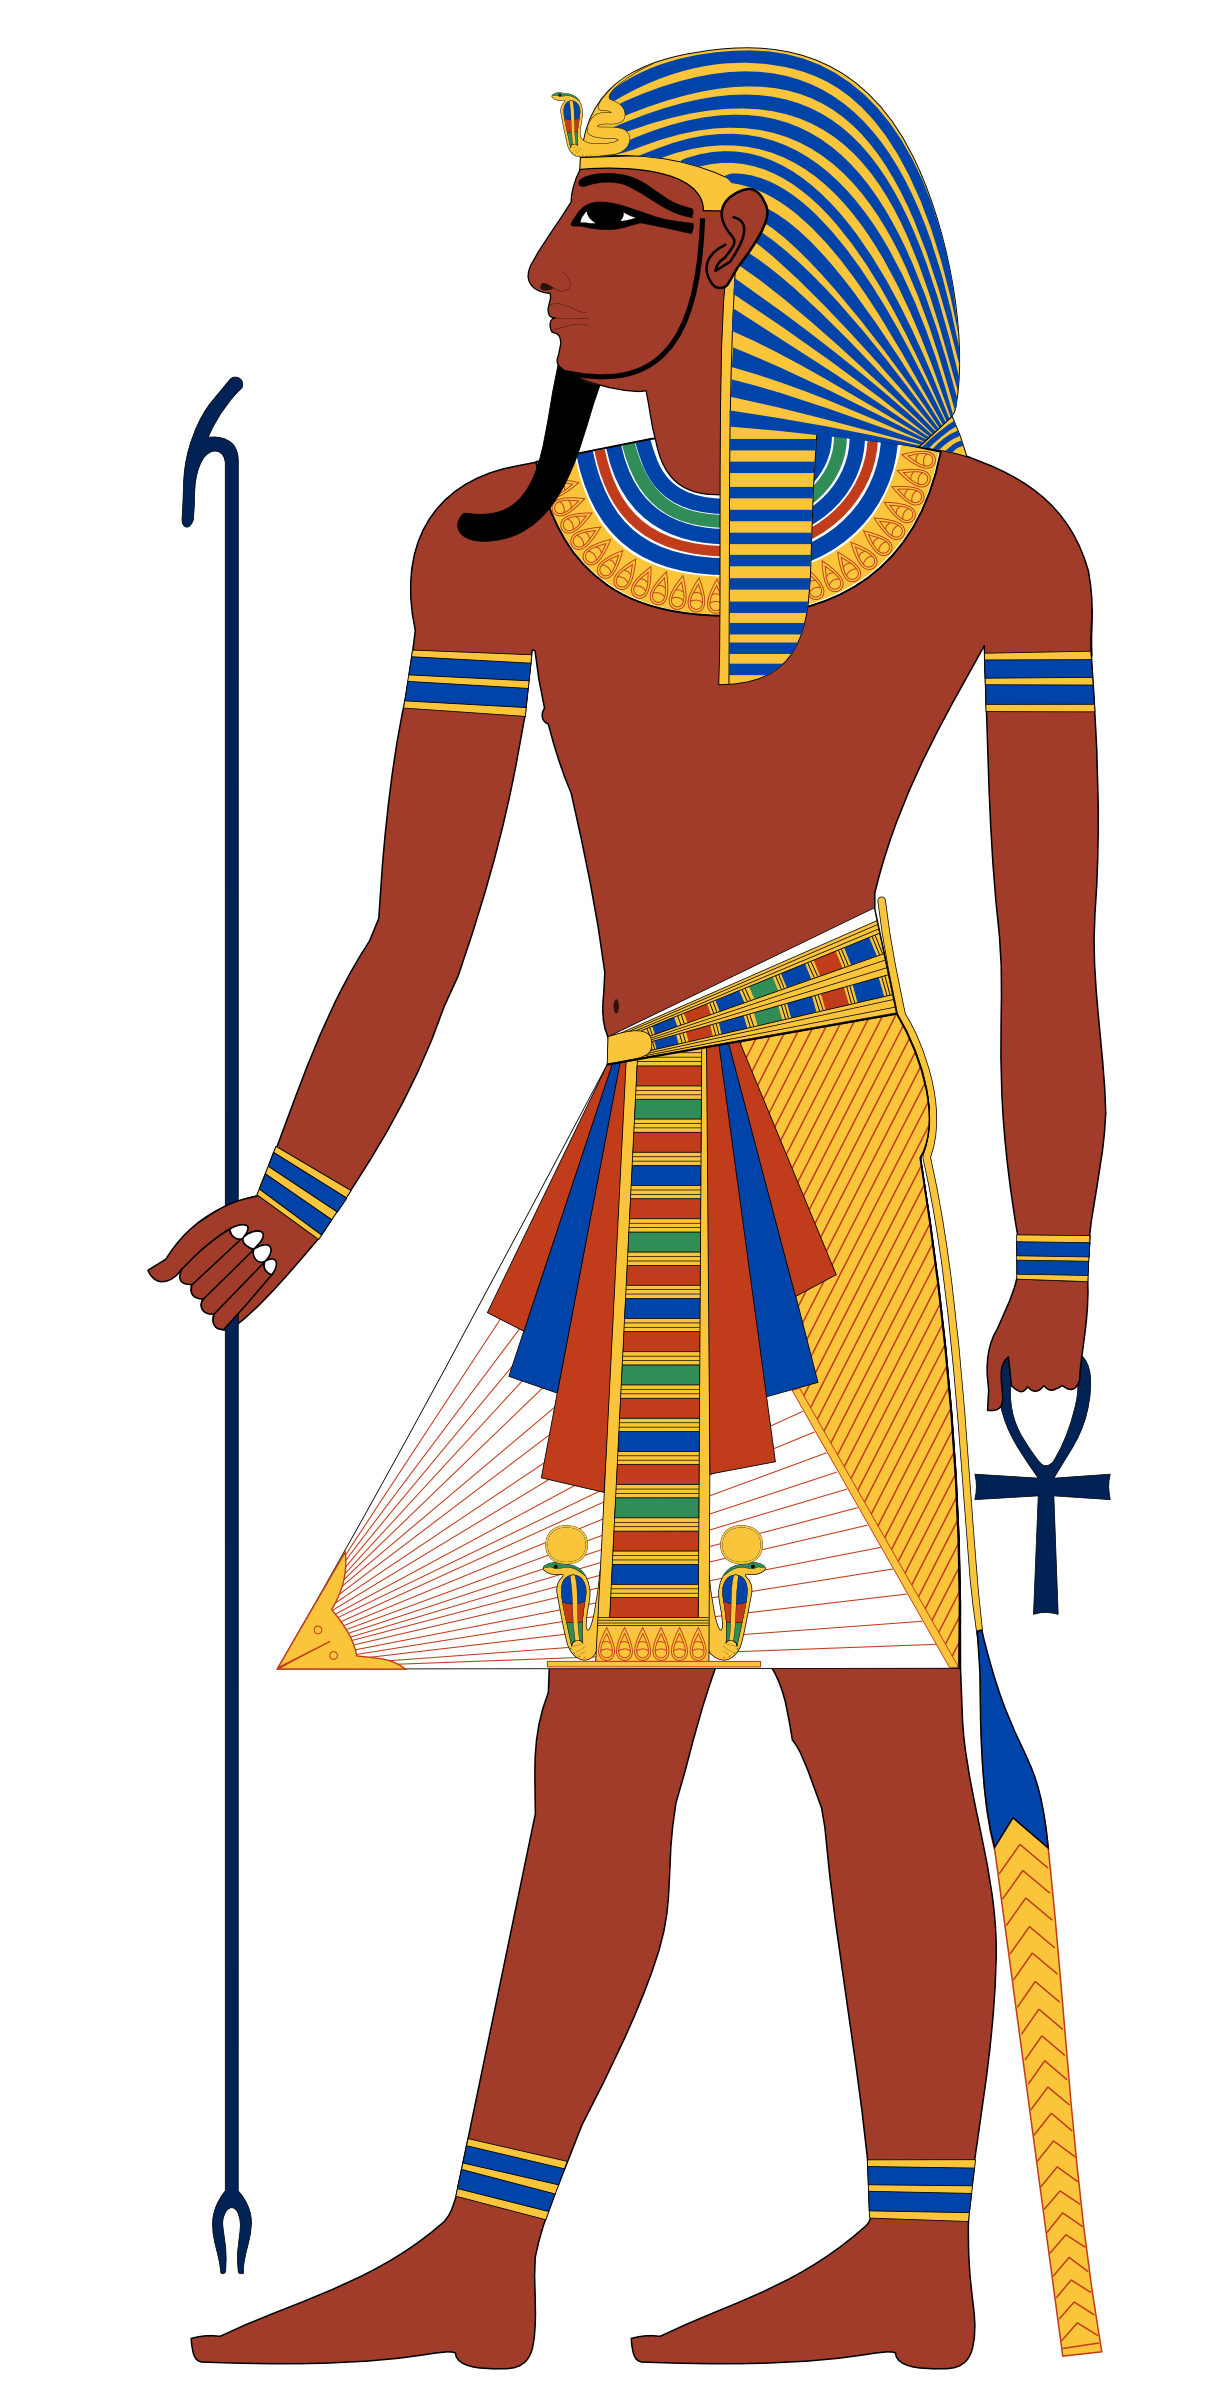 Tombs egyptian clipart graphic black and white stock Free Egyptian Soldier Cliparts, Download Free Clip Art, Free Clip ... graphic black and white stock